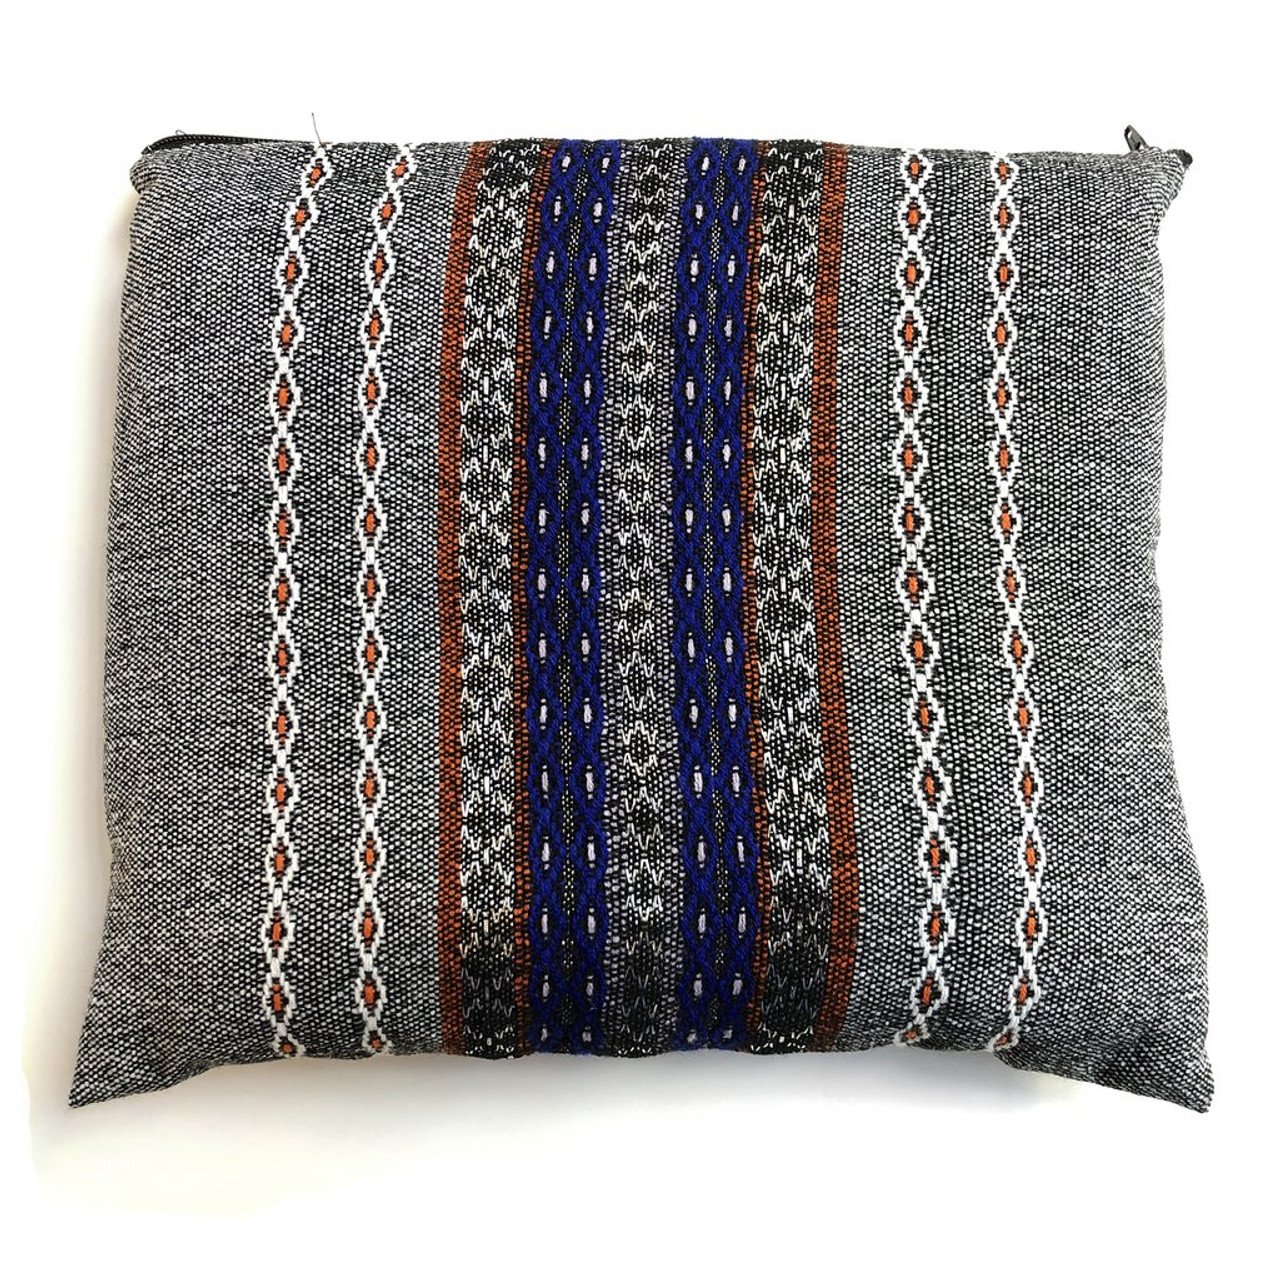 Gabrieli Premium - Gray with Blue & Orange